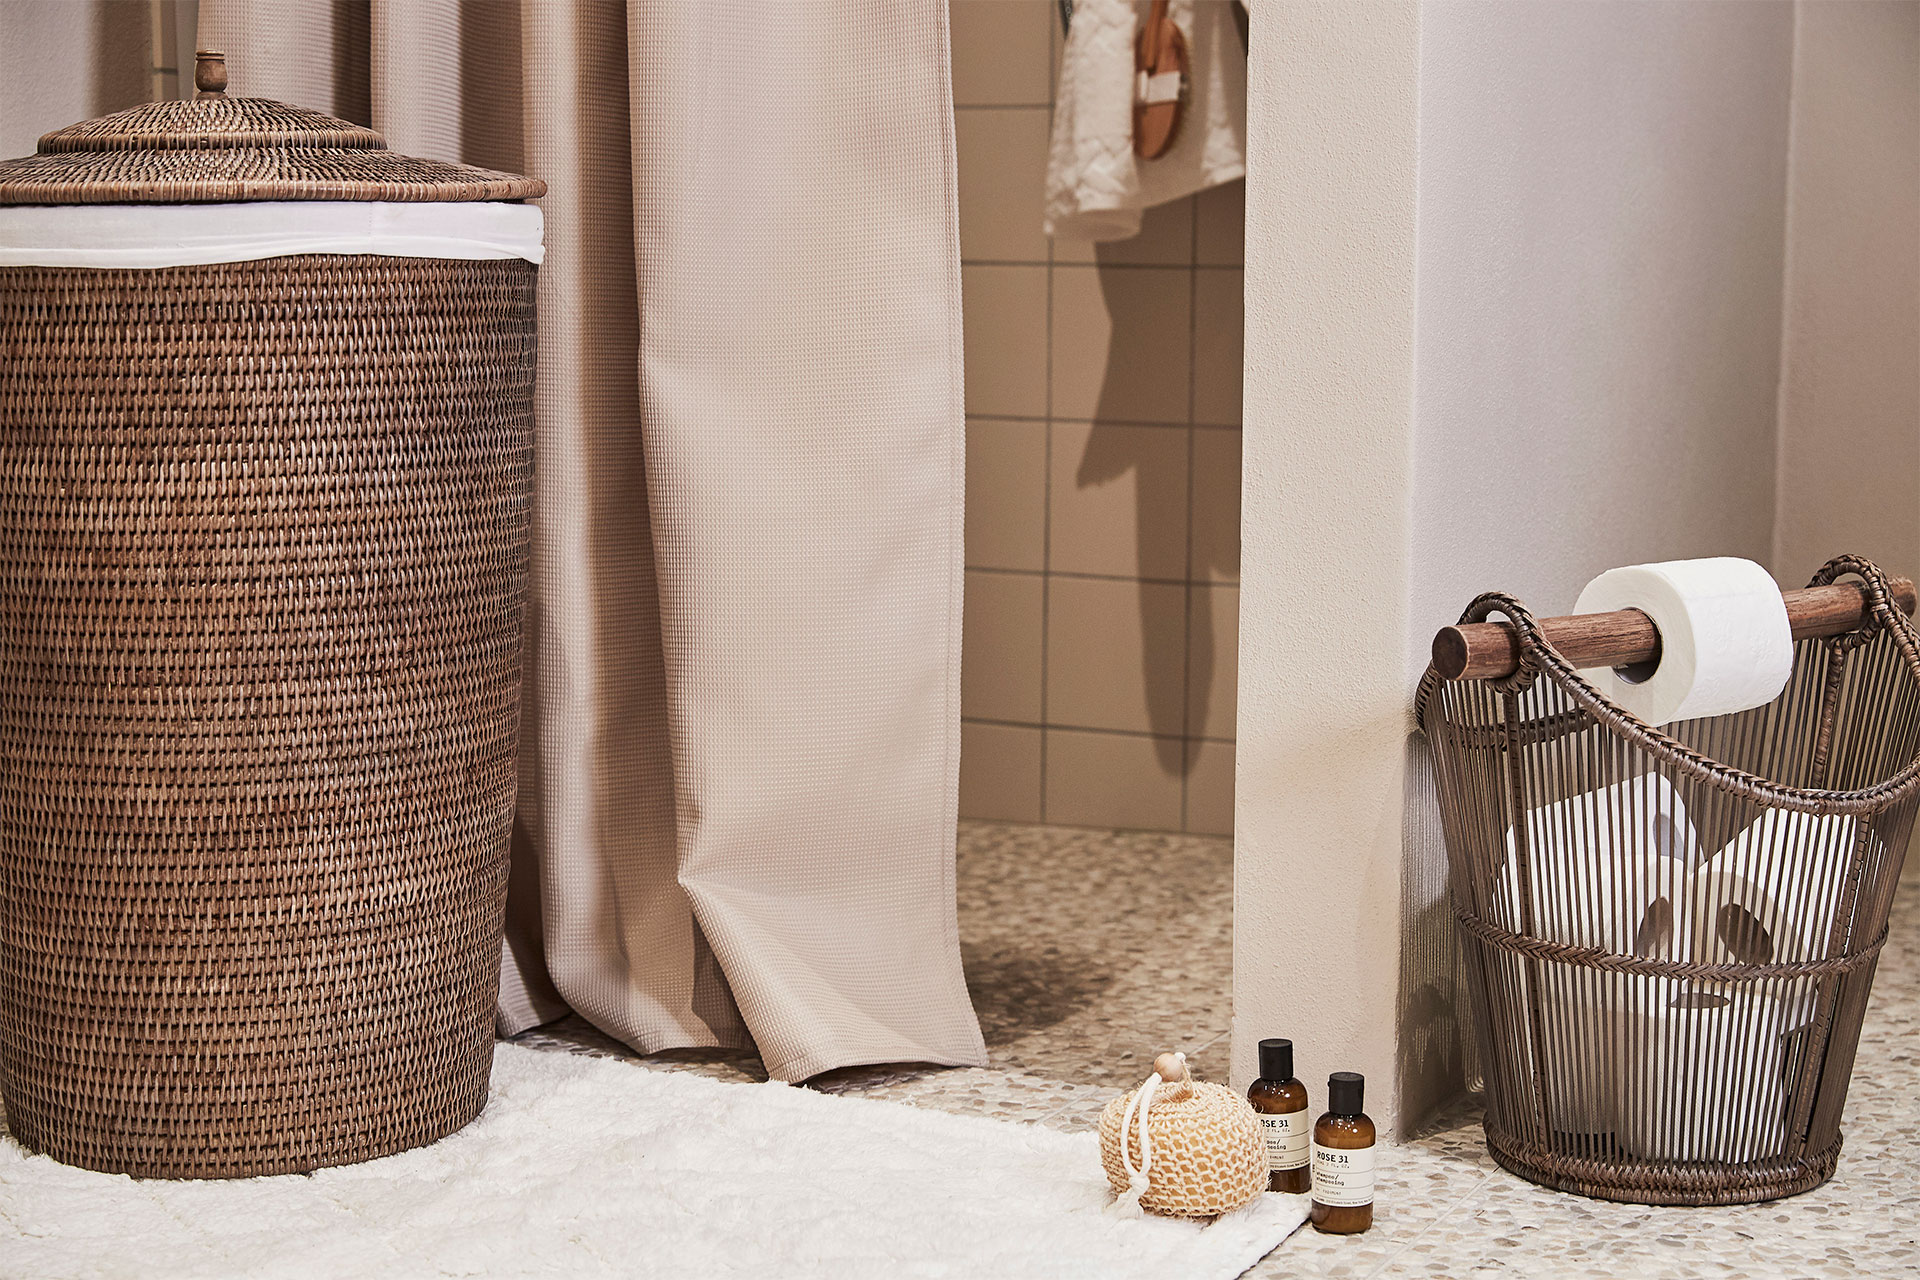 Add texture and warmth to your bathroom with rattan home accessories - Lene Bjerre